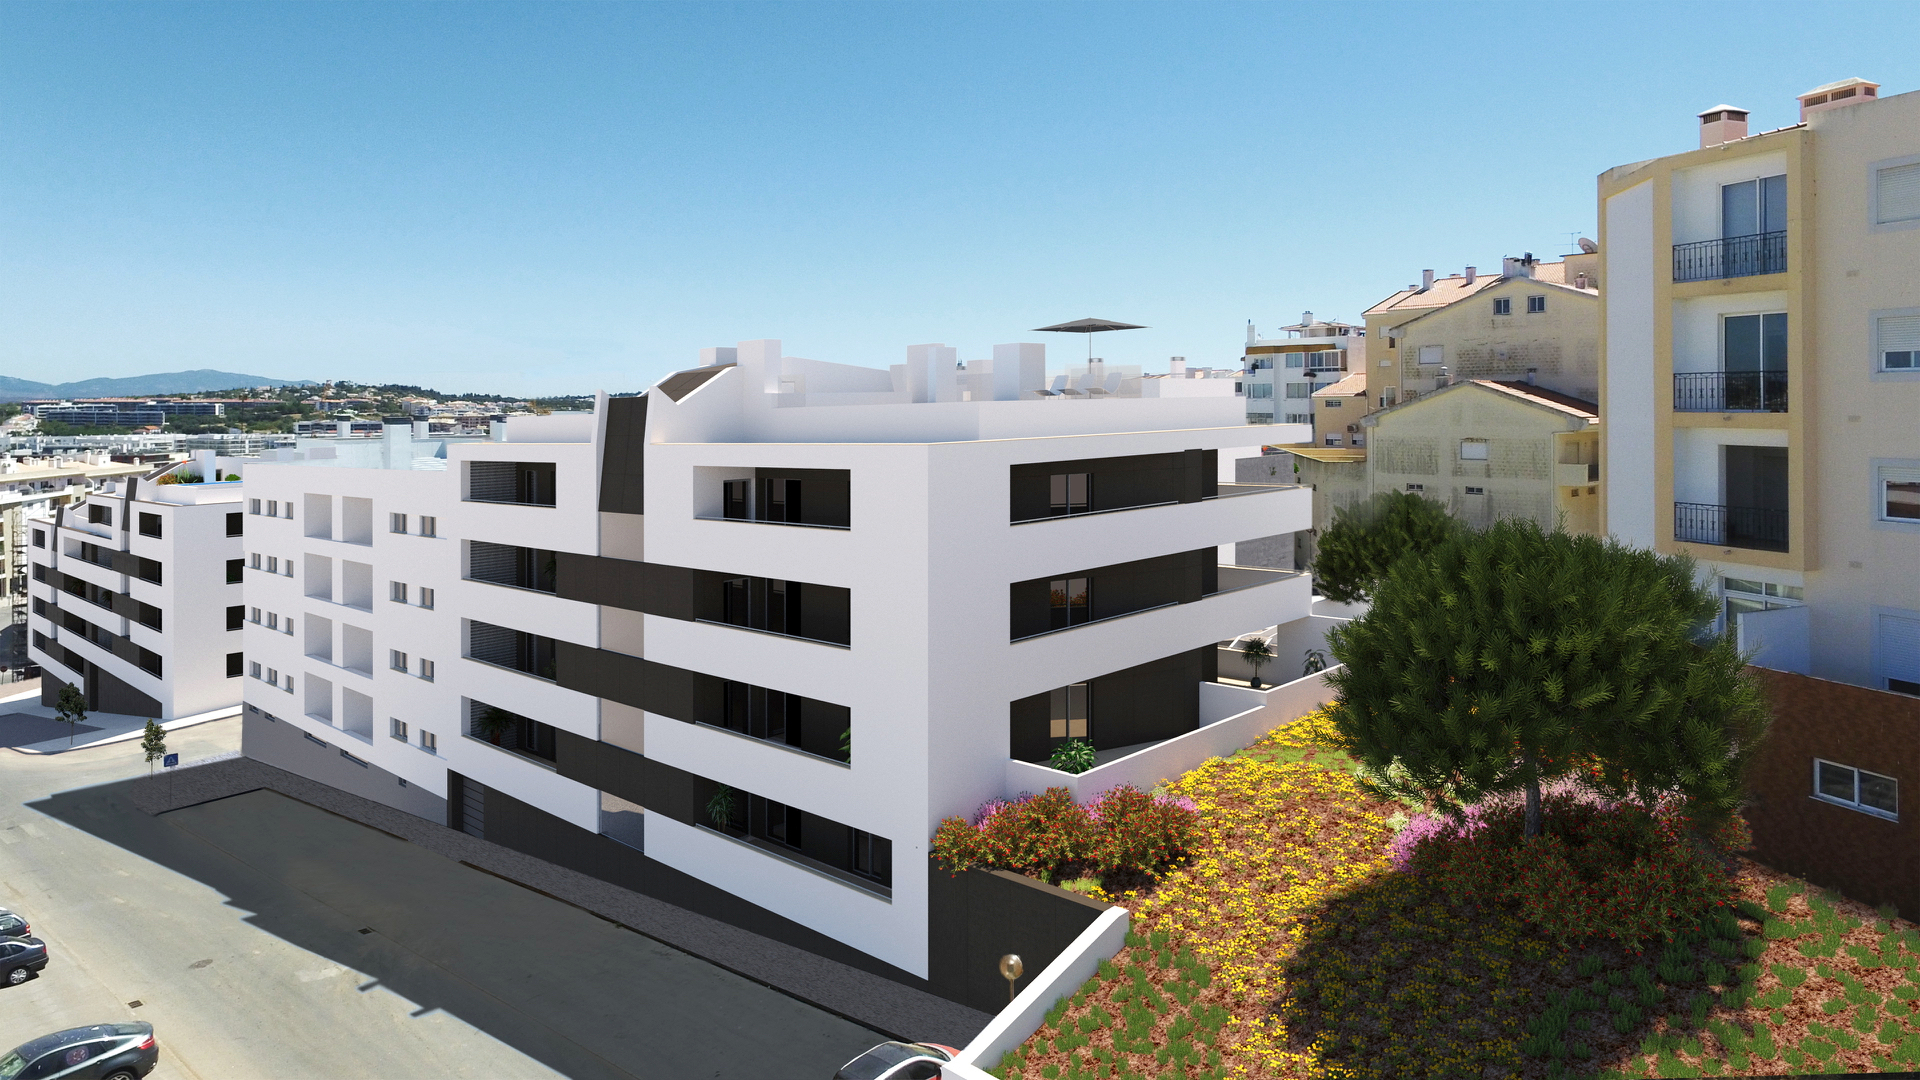 Luxury apartments, with rooftop pool in Lagos, West Algarve  | LG1183 Completed in Autumn 2020, these superb luxury apartments will be highly sought after due to their convenient location to the historic centre, beaches and marina in Lagos.